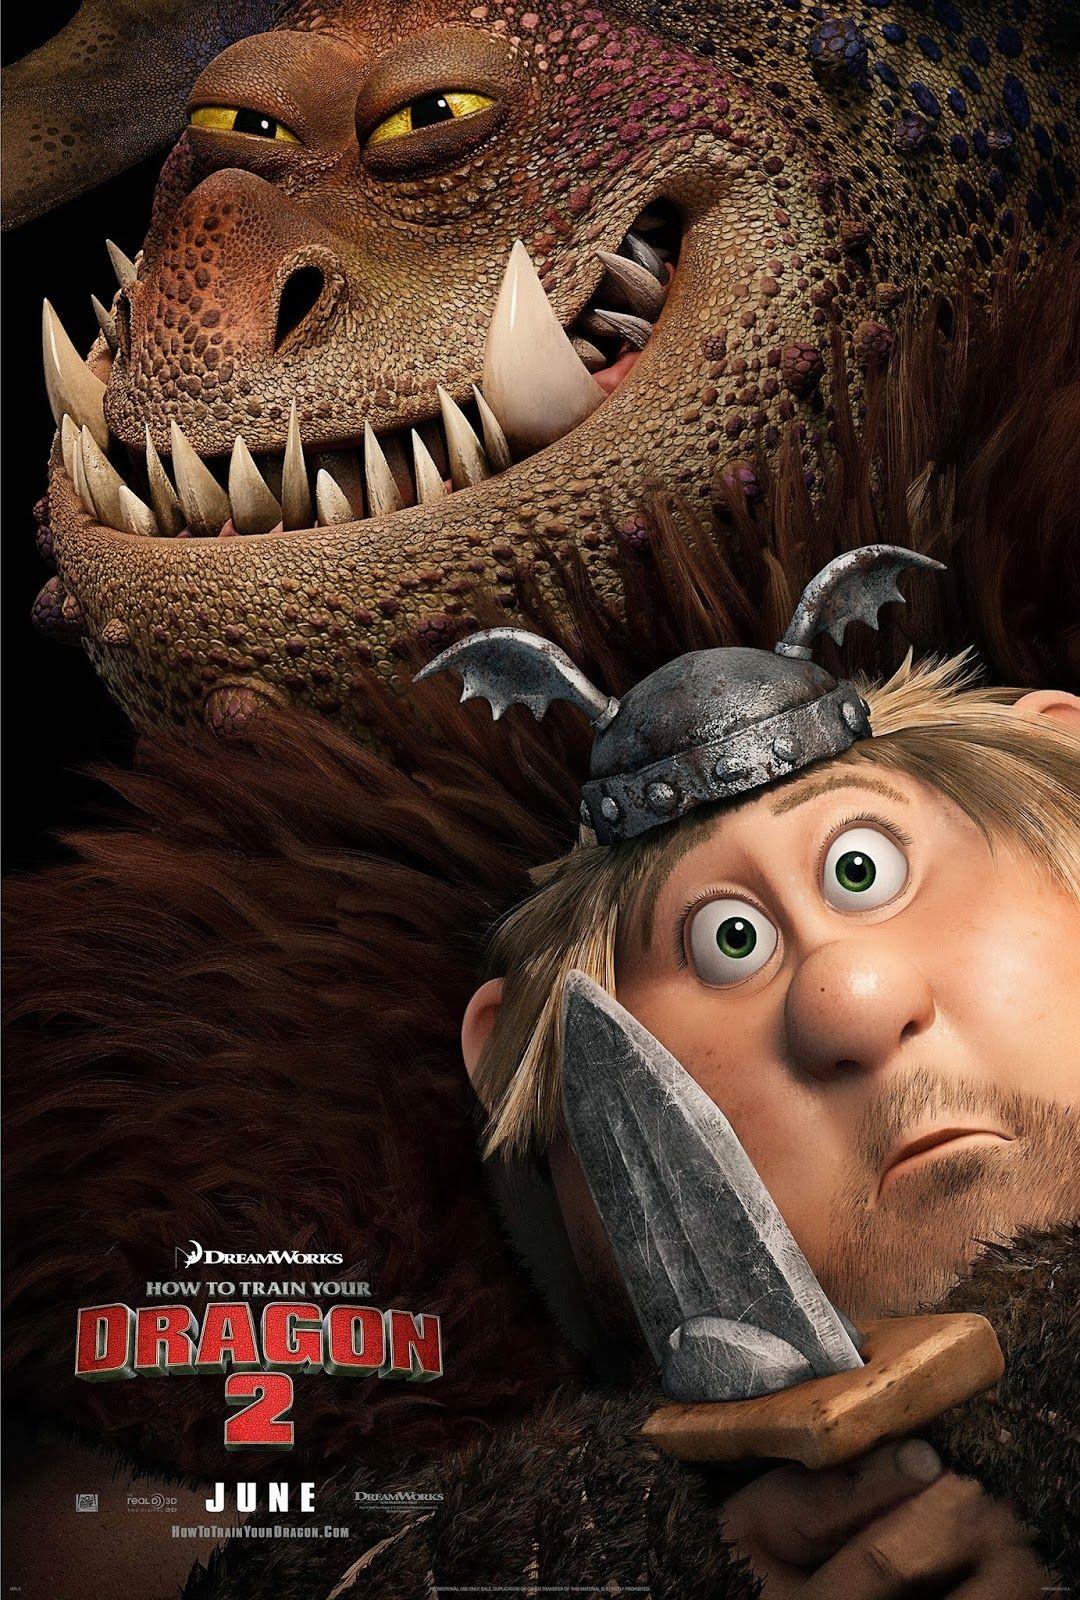 First look exclusive how to train your dragon 2 poster featuring first look exclusive how to train your dragon 2 poster featuring off aged ccuart Image collections